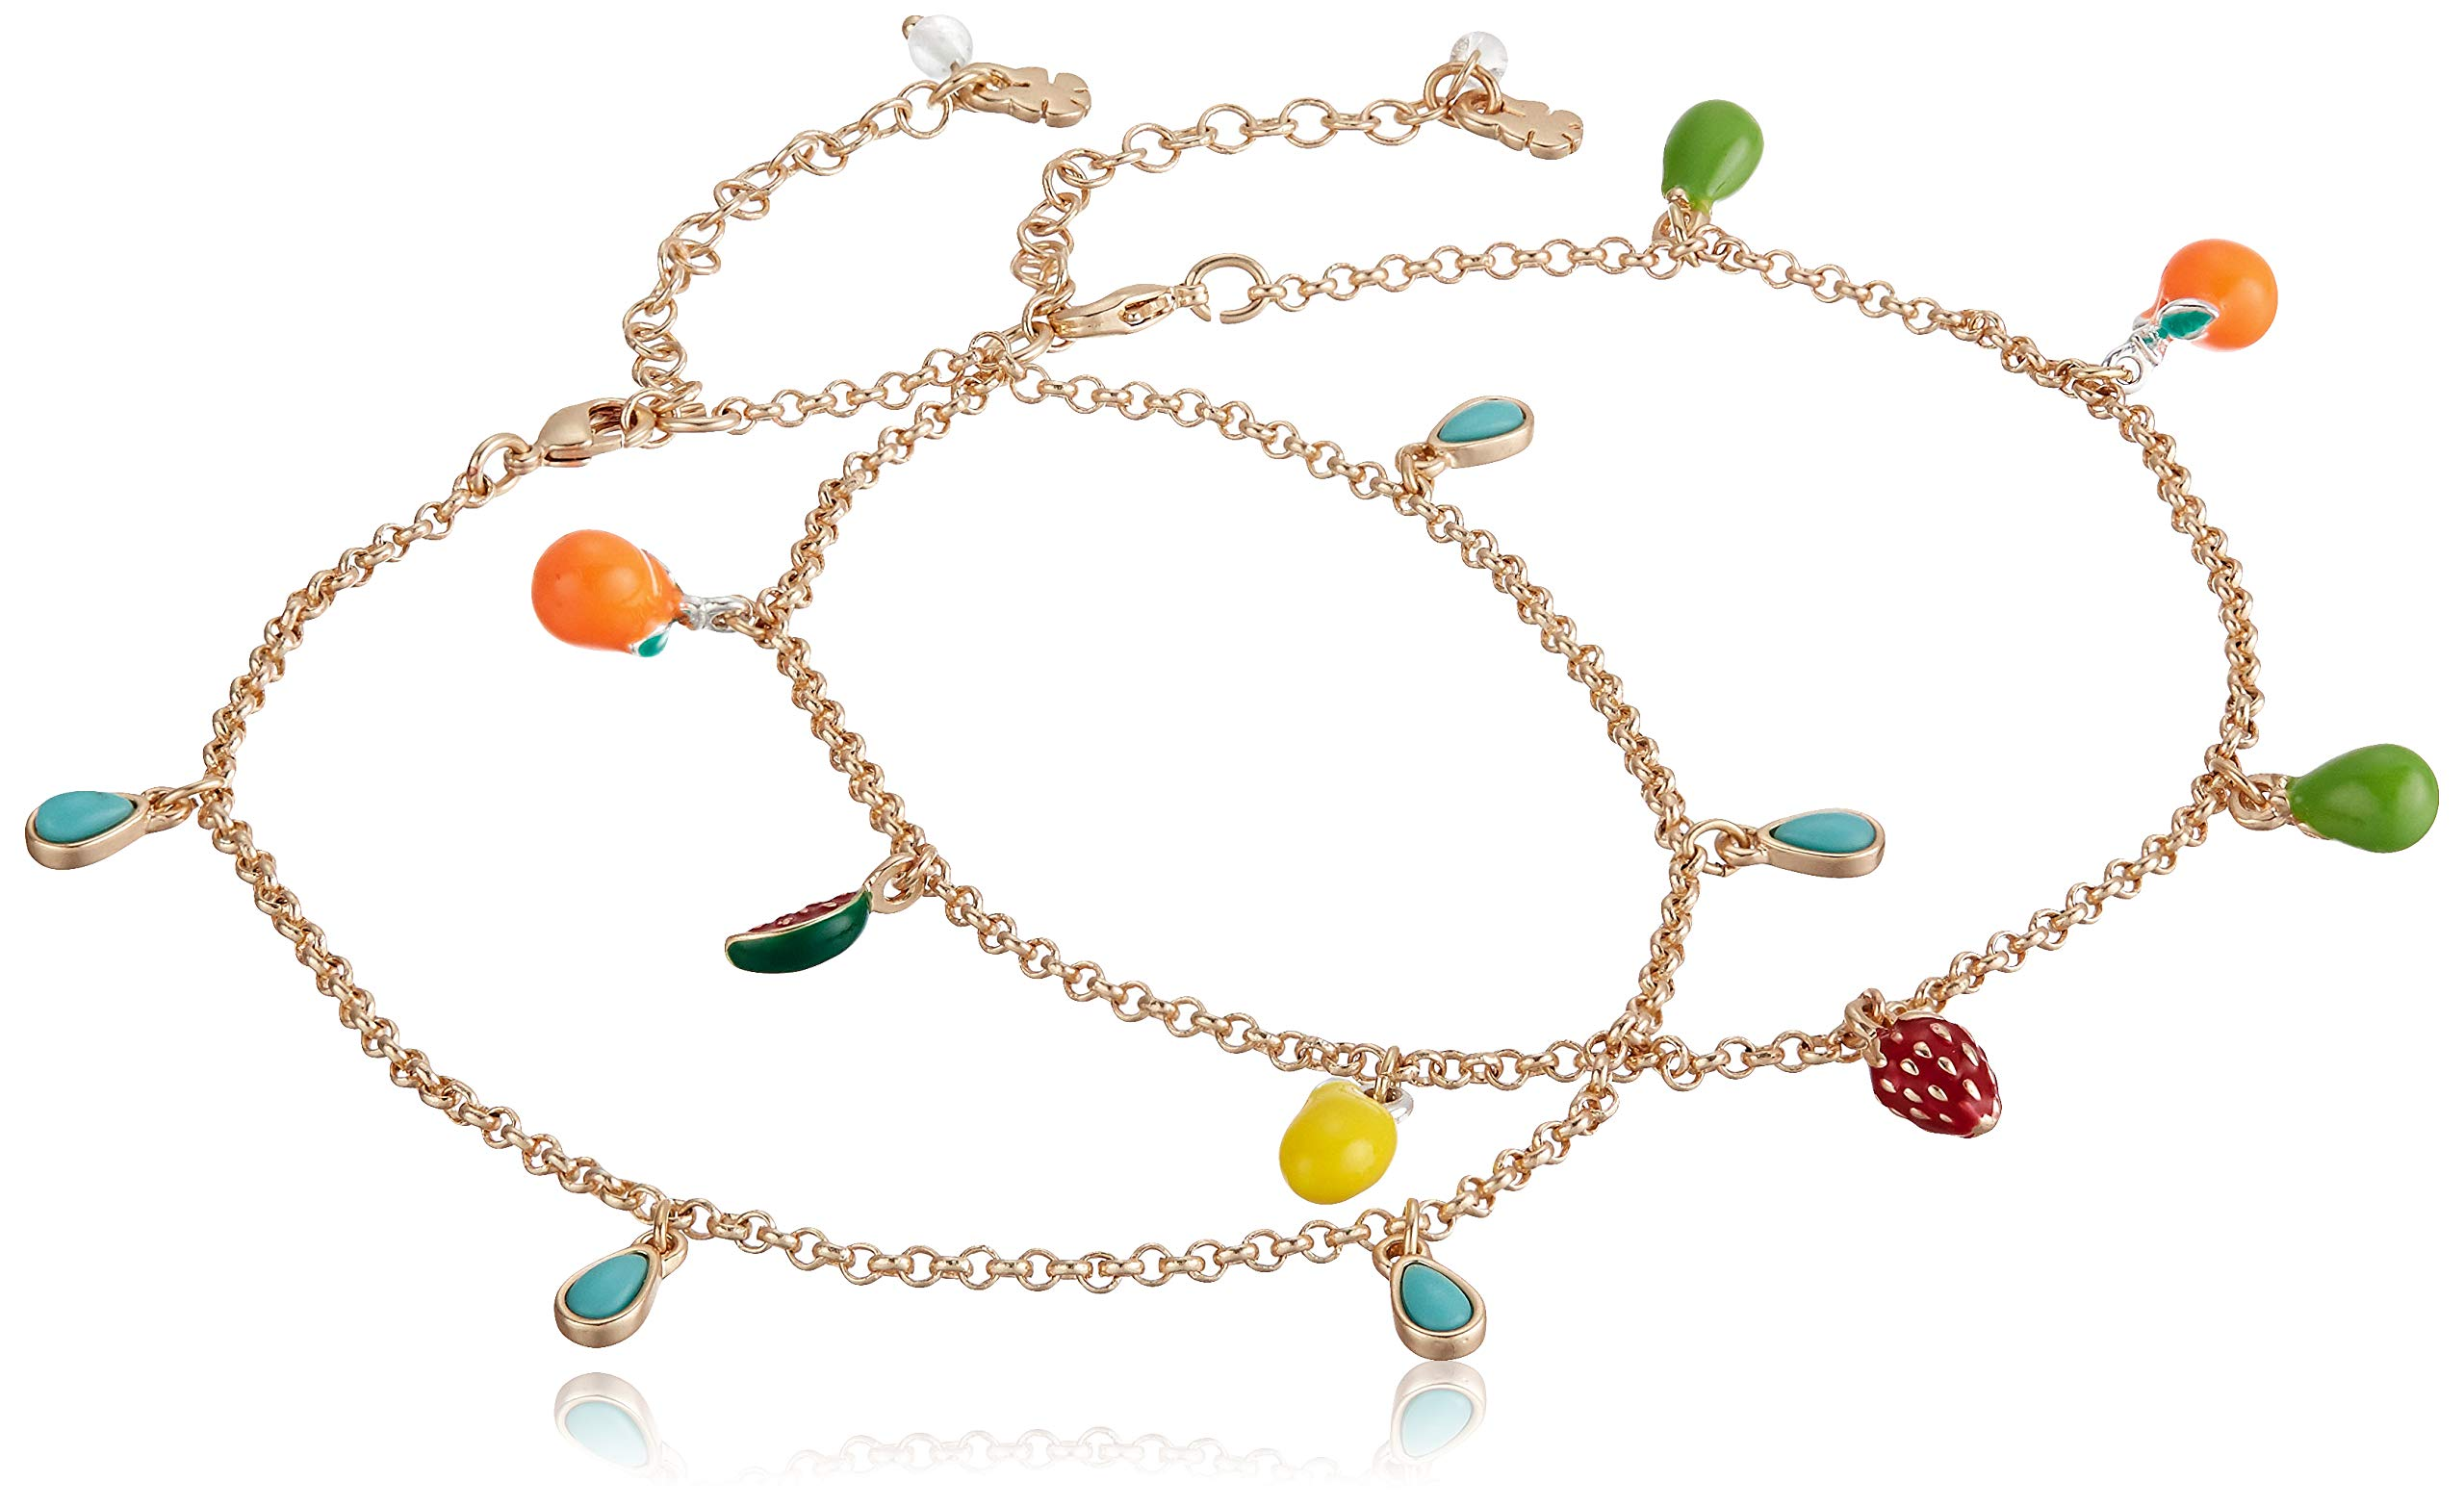 Bling Jewelry Multi Lucky Dangle Bead Charm Anklet Ankle Bracelet for Women 18K Gold Plated Brass Adjustable 9.5Inch